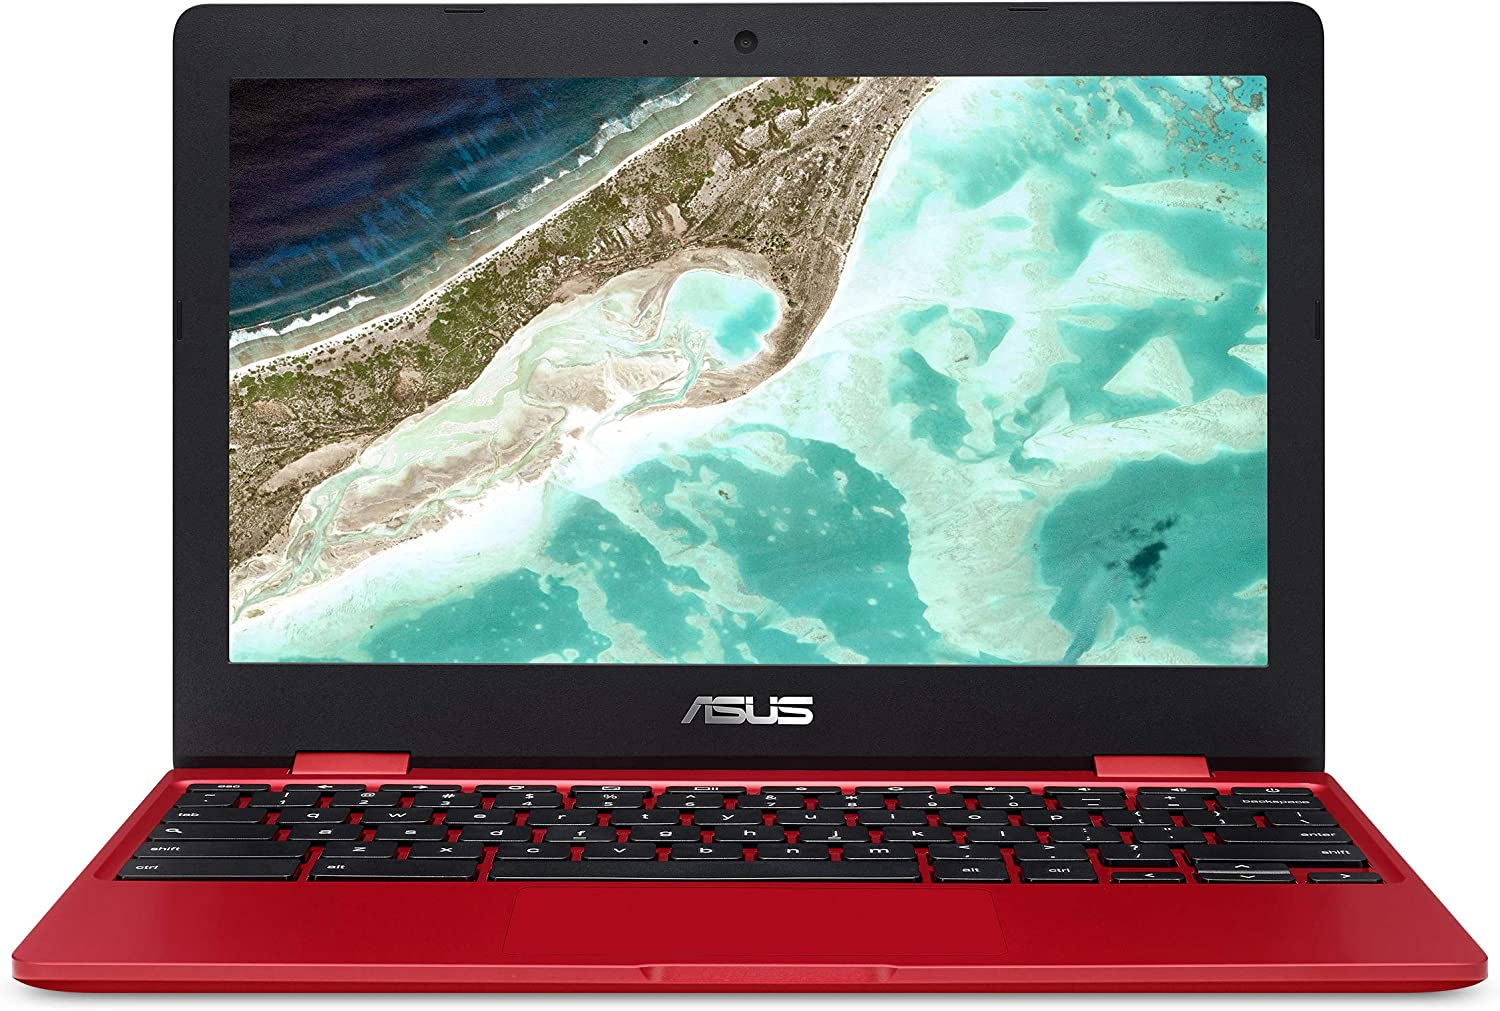 "Asus Chromebook C223 Laptop- 11.6"", Intel Dual-Core Celeron N3350 Processor (Up to 2.4GHz) 4GB RAM, 32GB eMMC Storage- C223NA-DH02-RD Red"